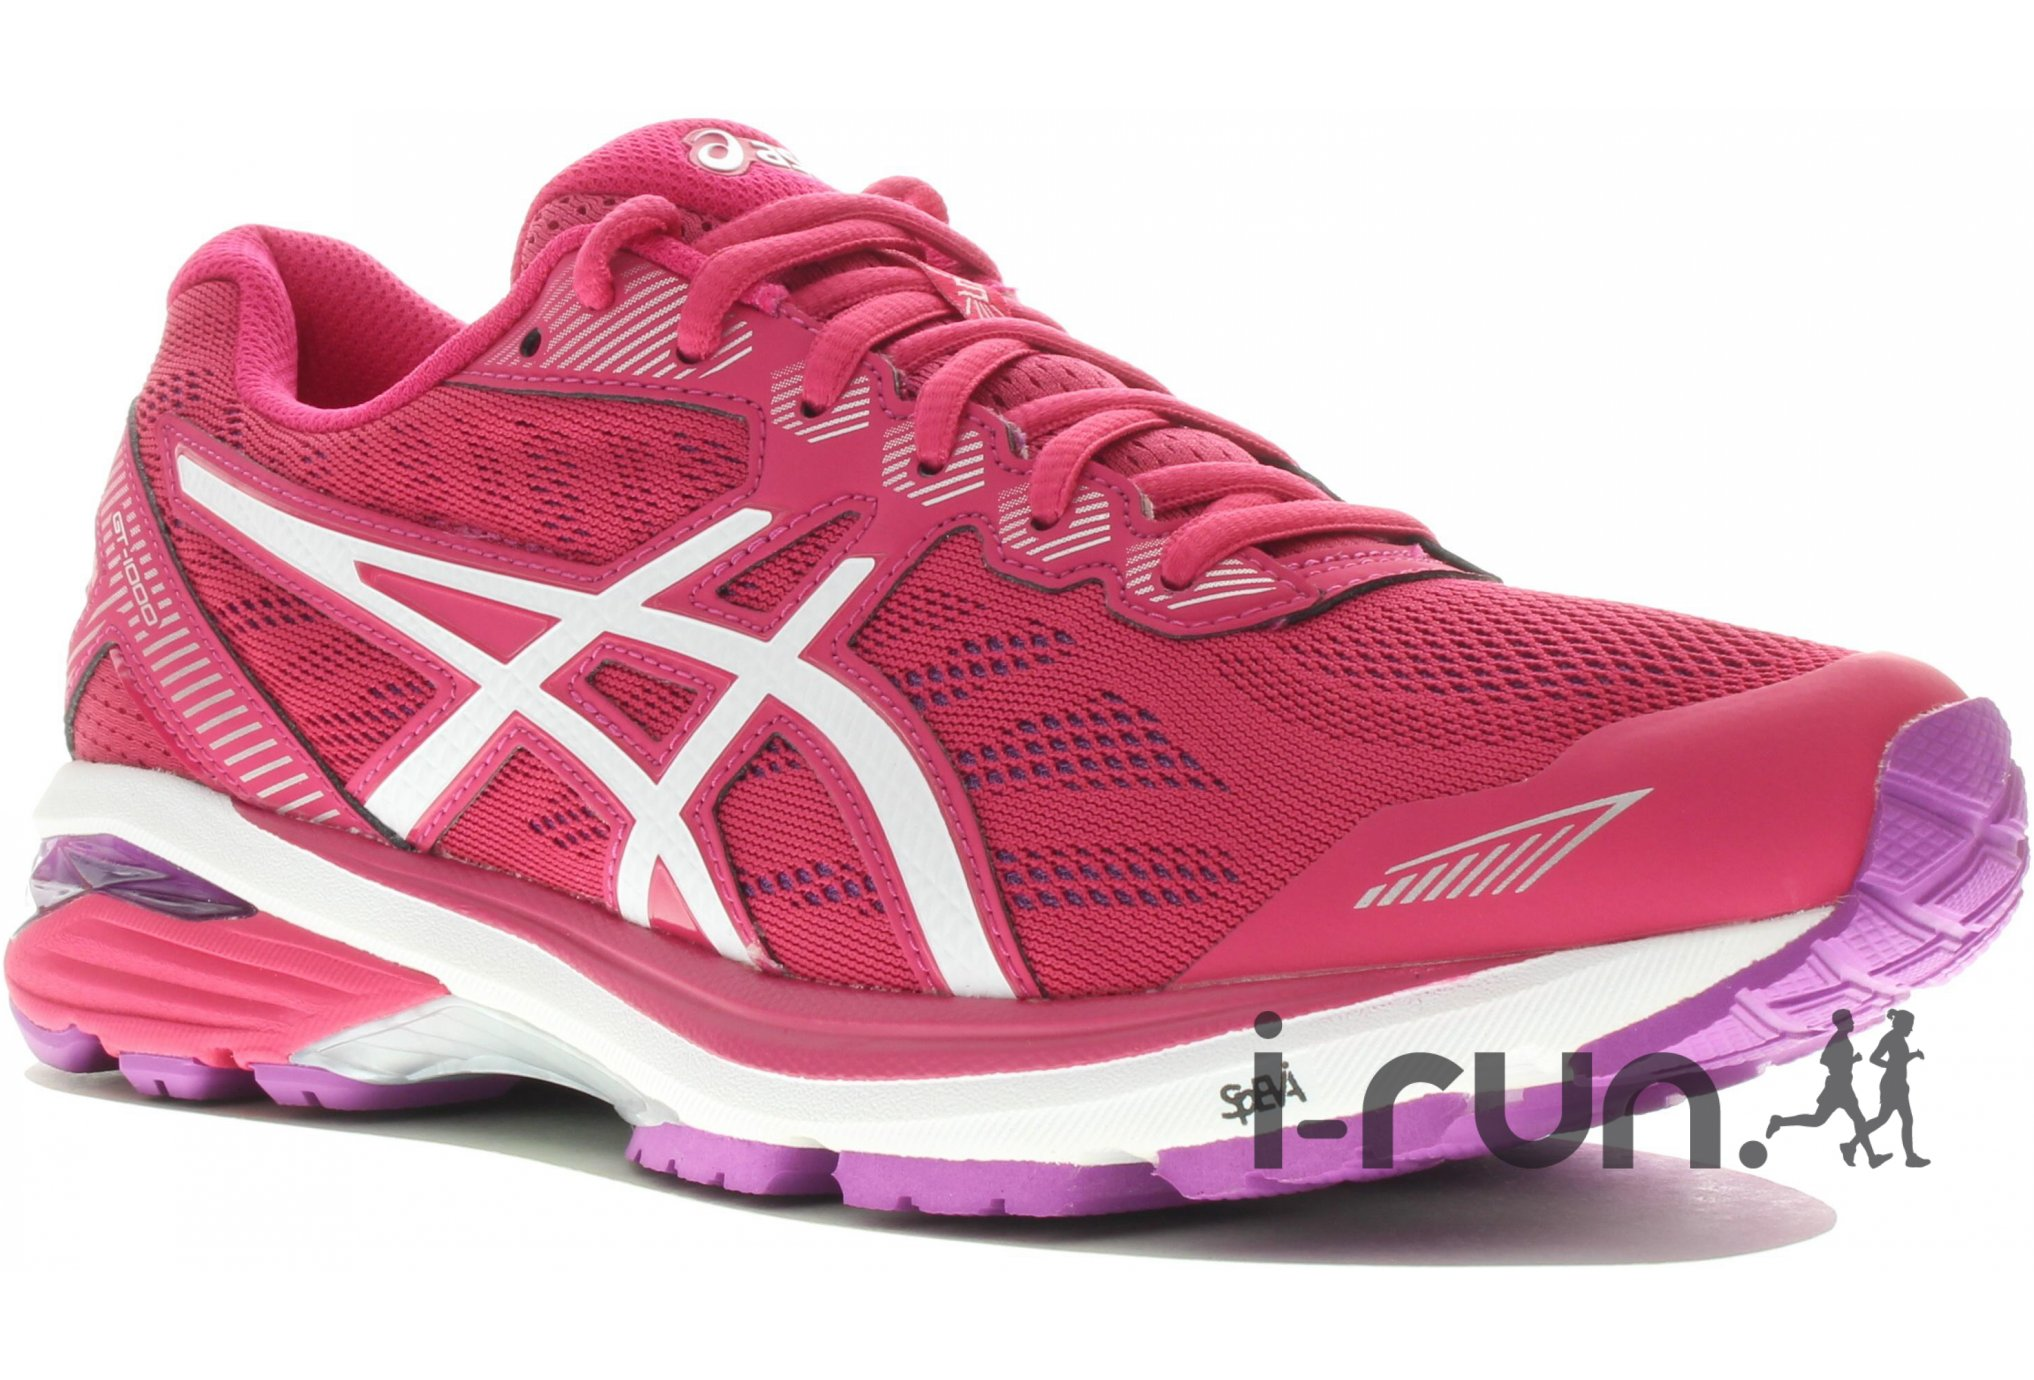 trail session asics gt 1000 5 w chaussures running femme. Black Bedroom Furniture Sets. Home Design Ideas